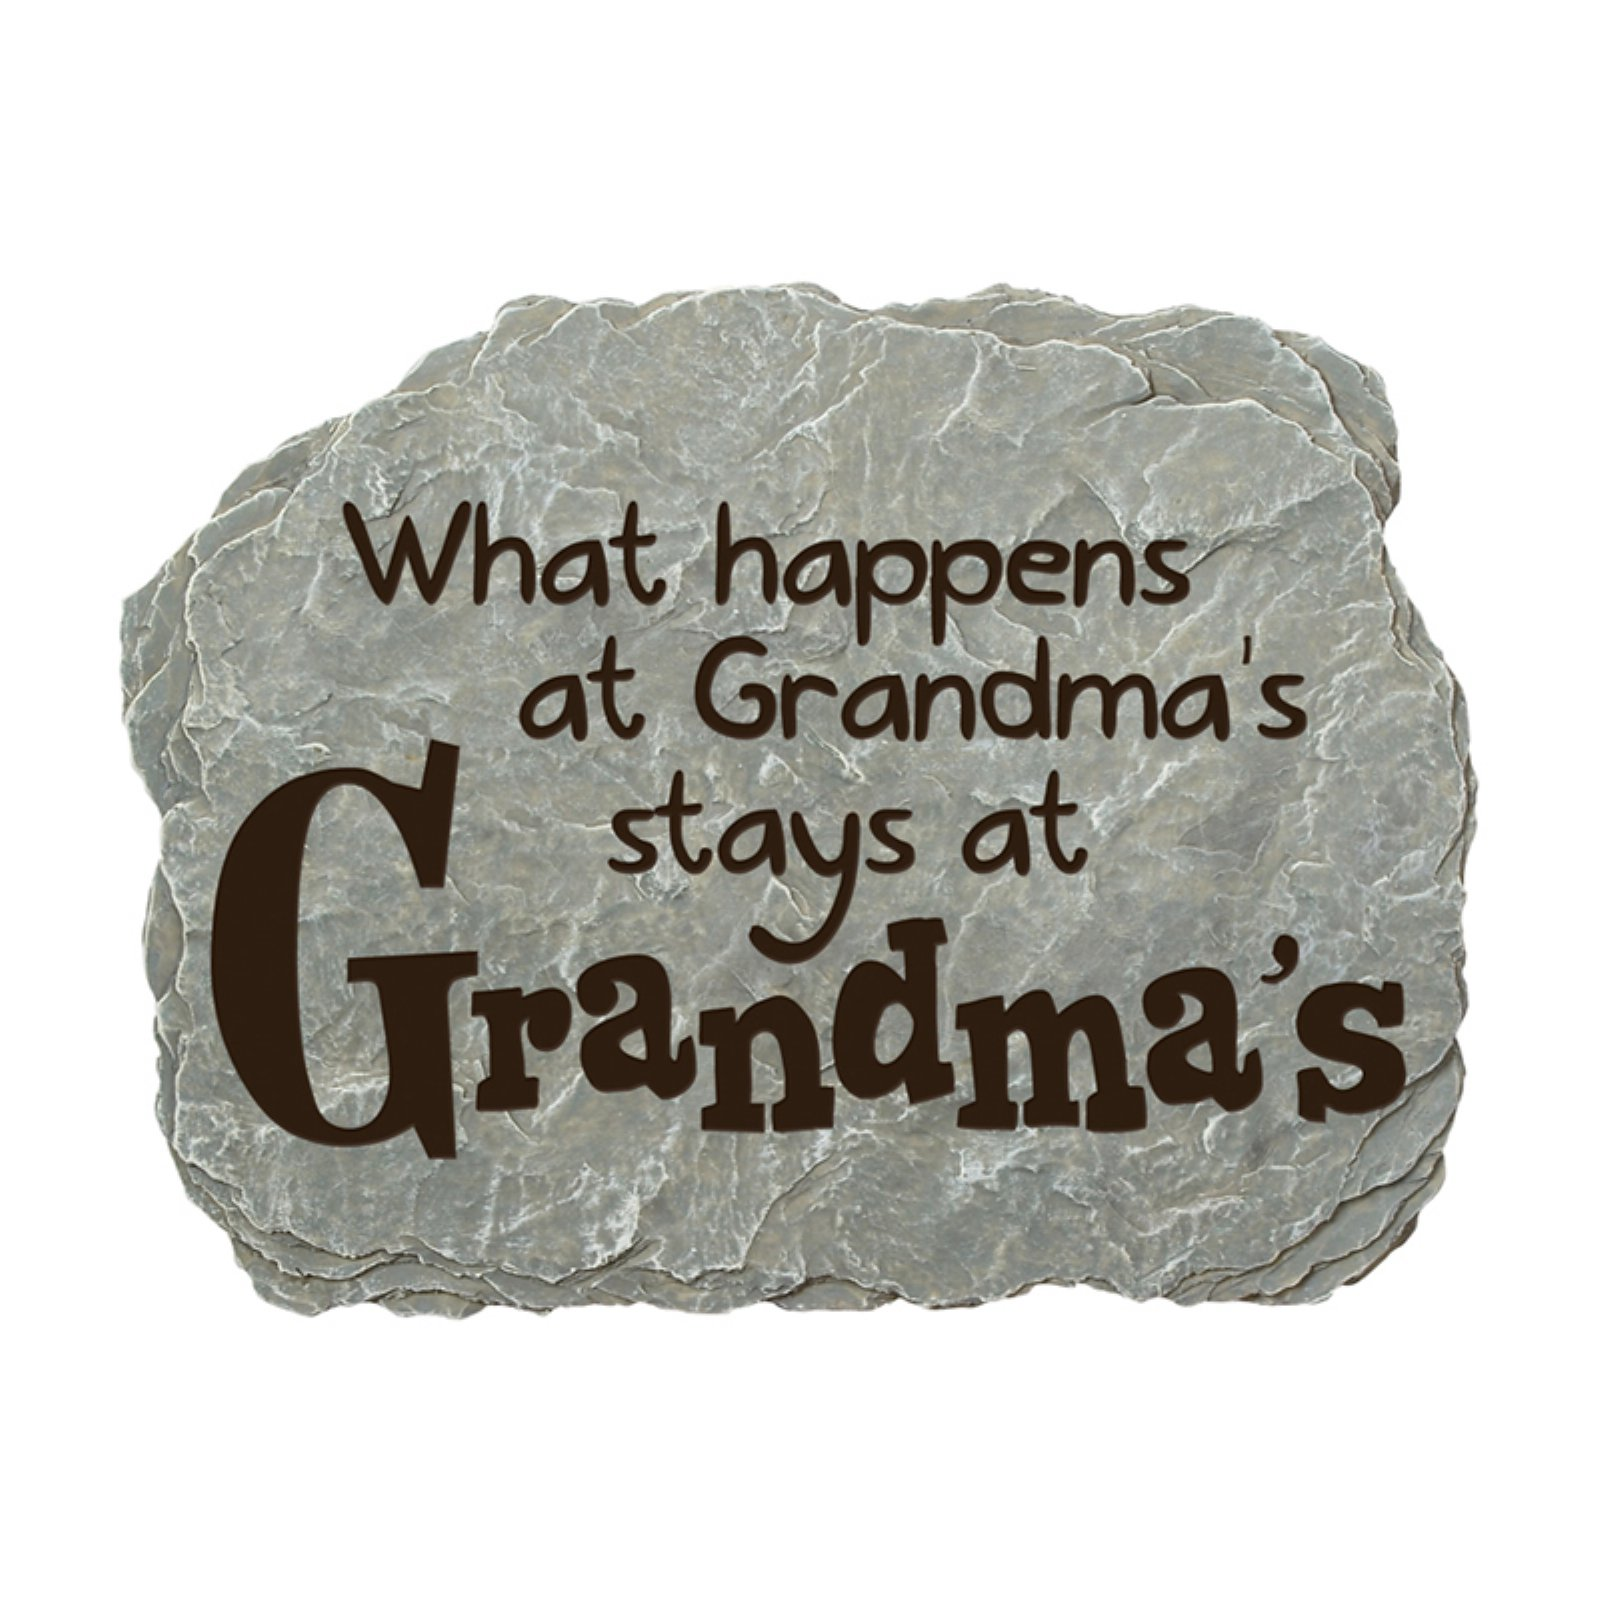 Carson Home Accents Happens at Grandma's - Garden Stone